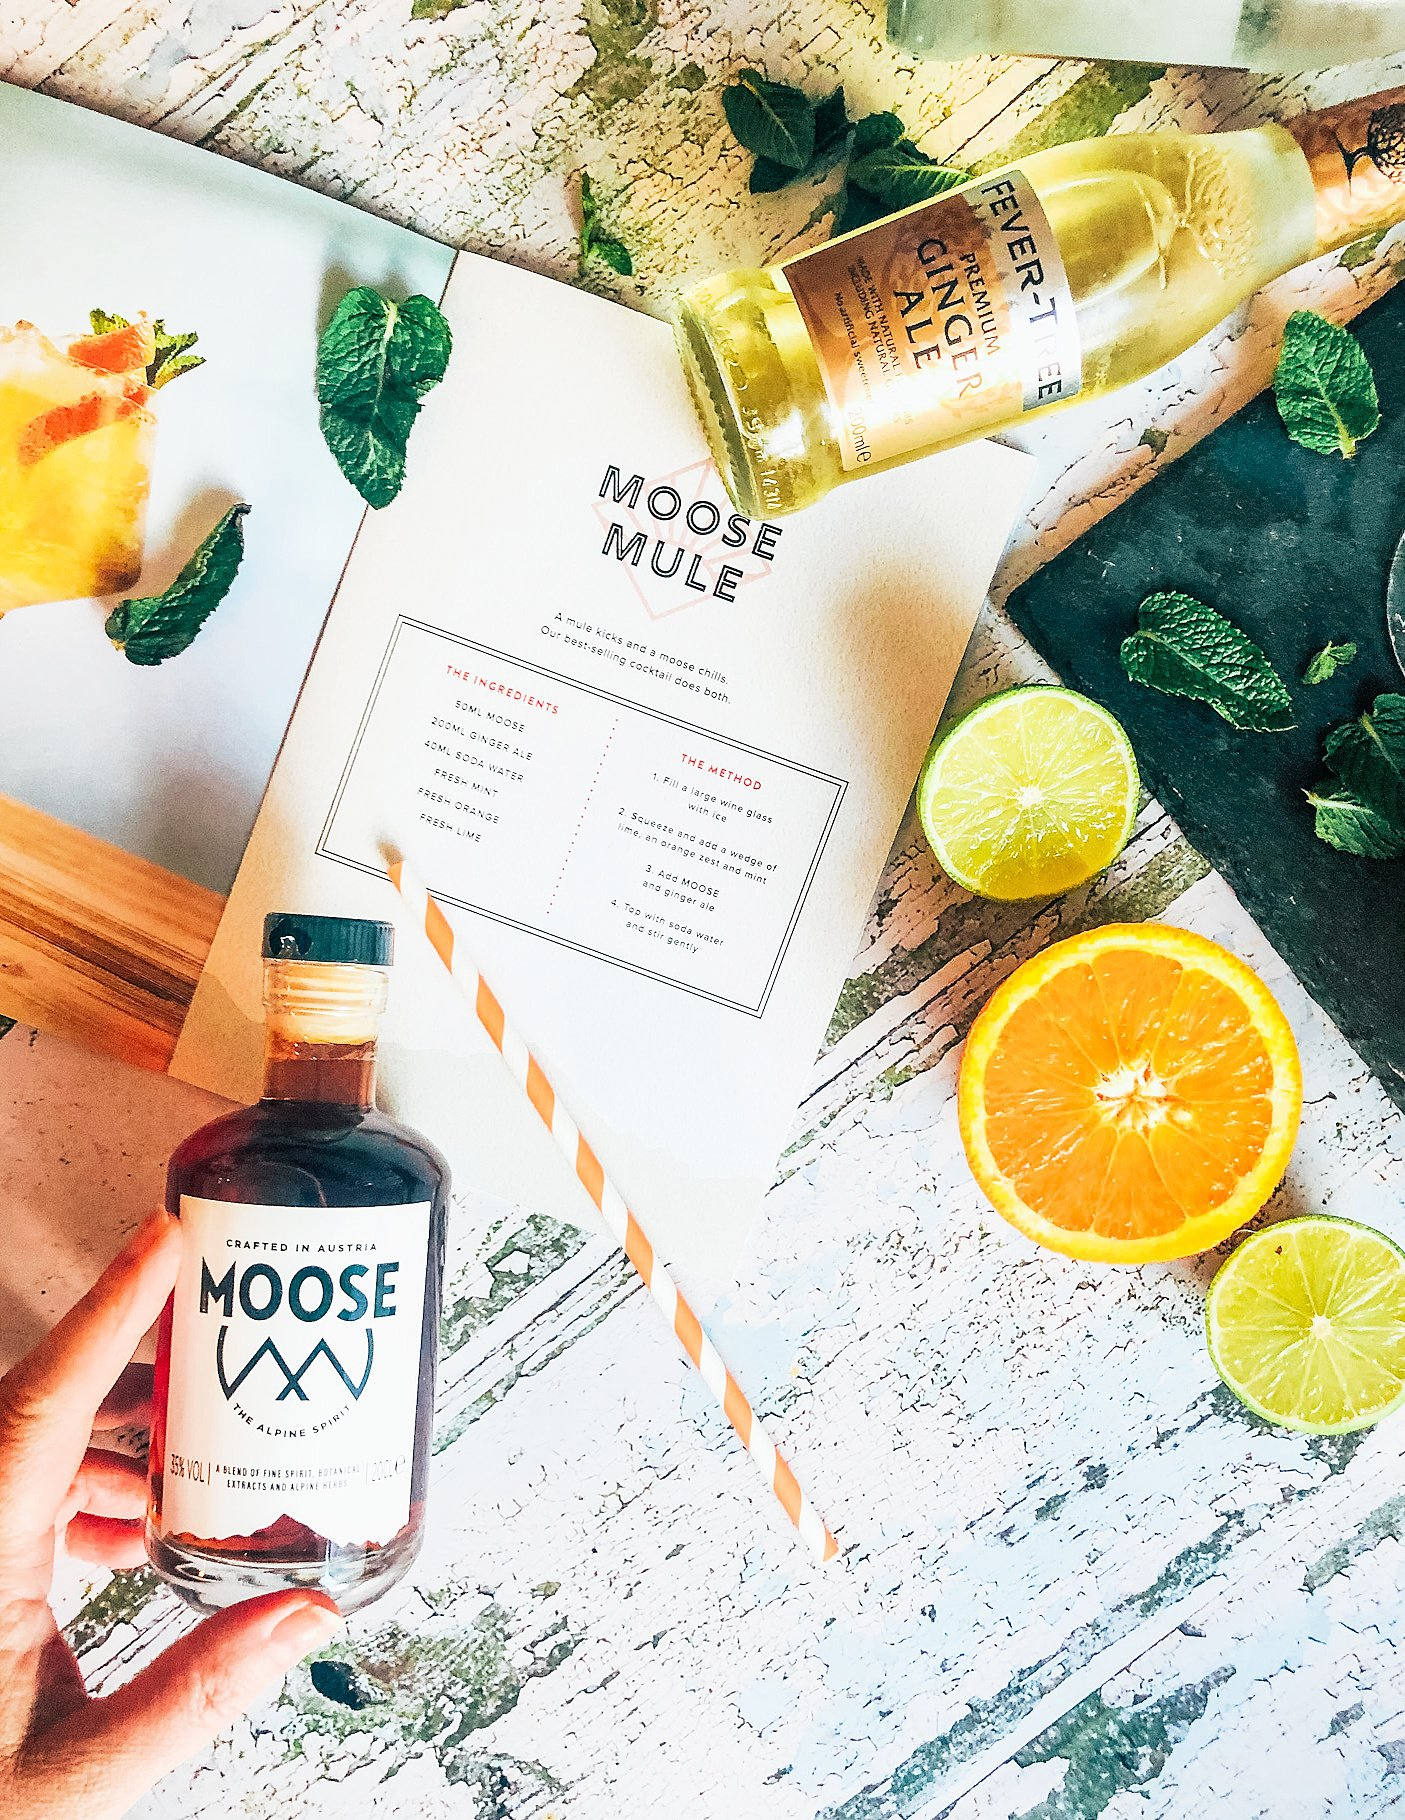 Moose cocktail  recipe